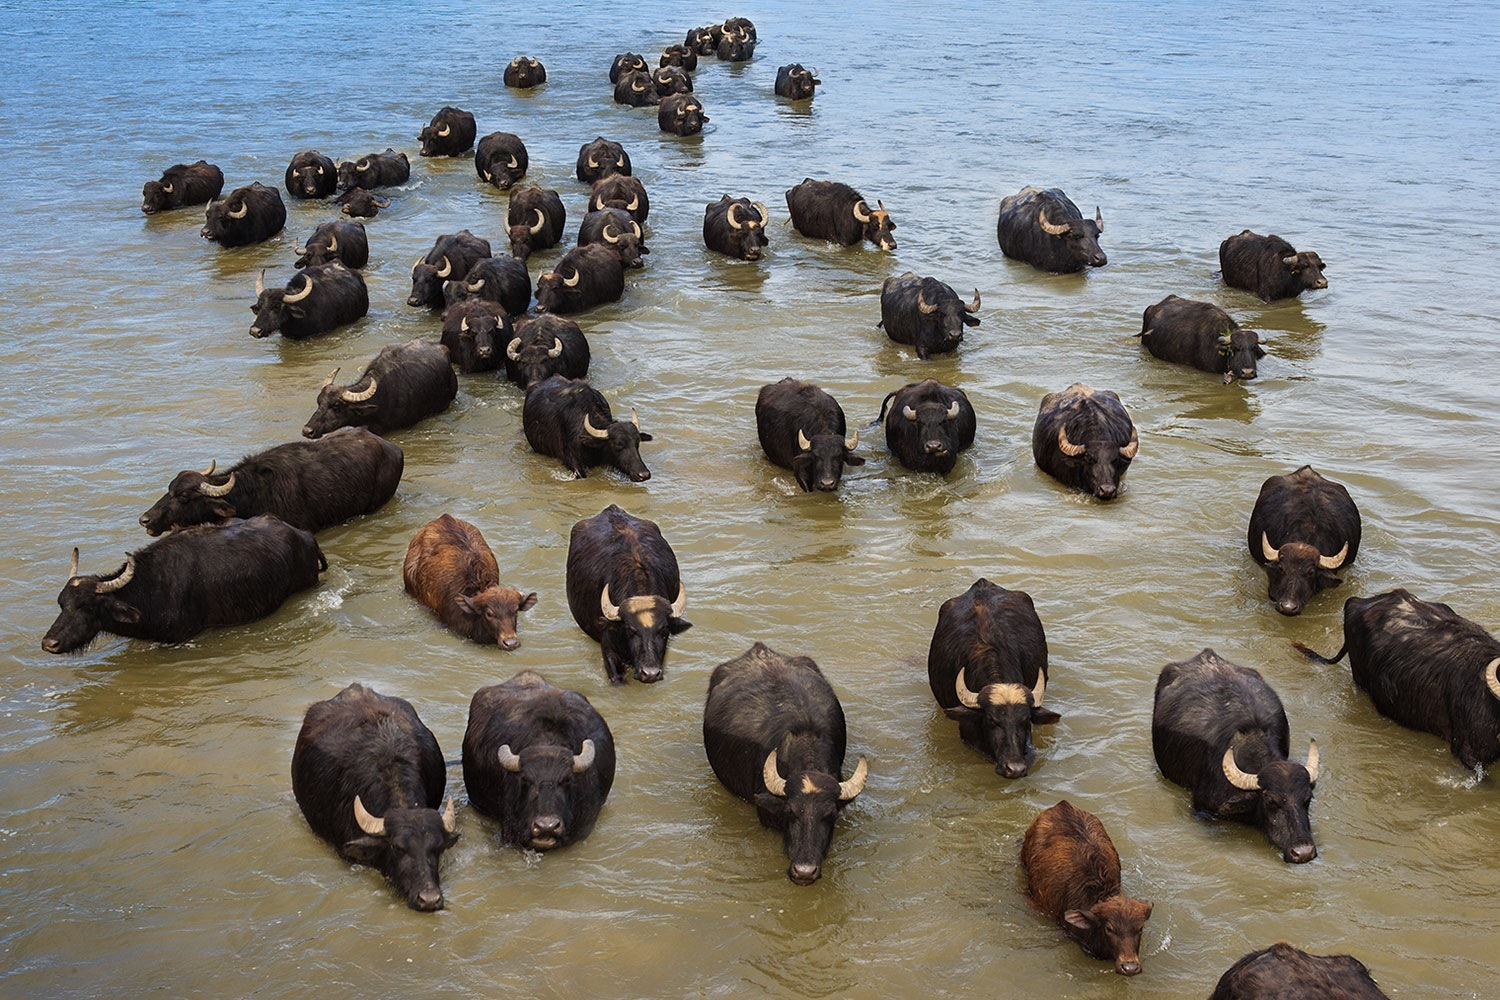 The buffalos swimming in lake's calm water by Sotiris Siomis